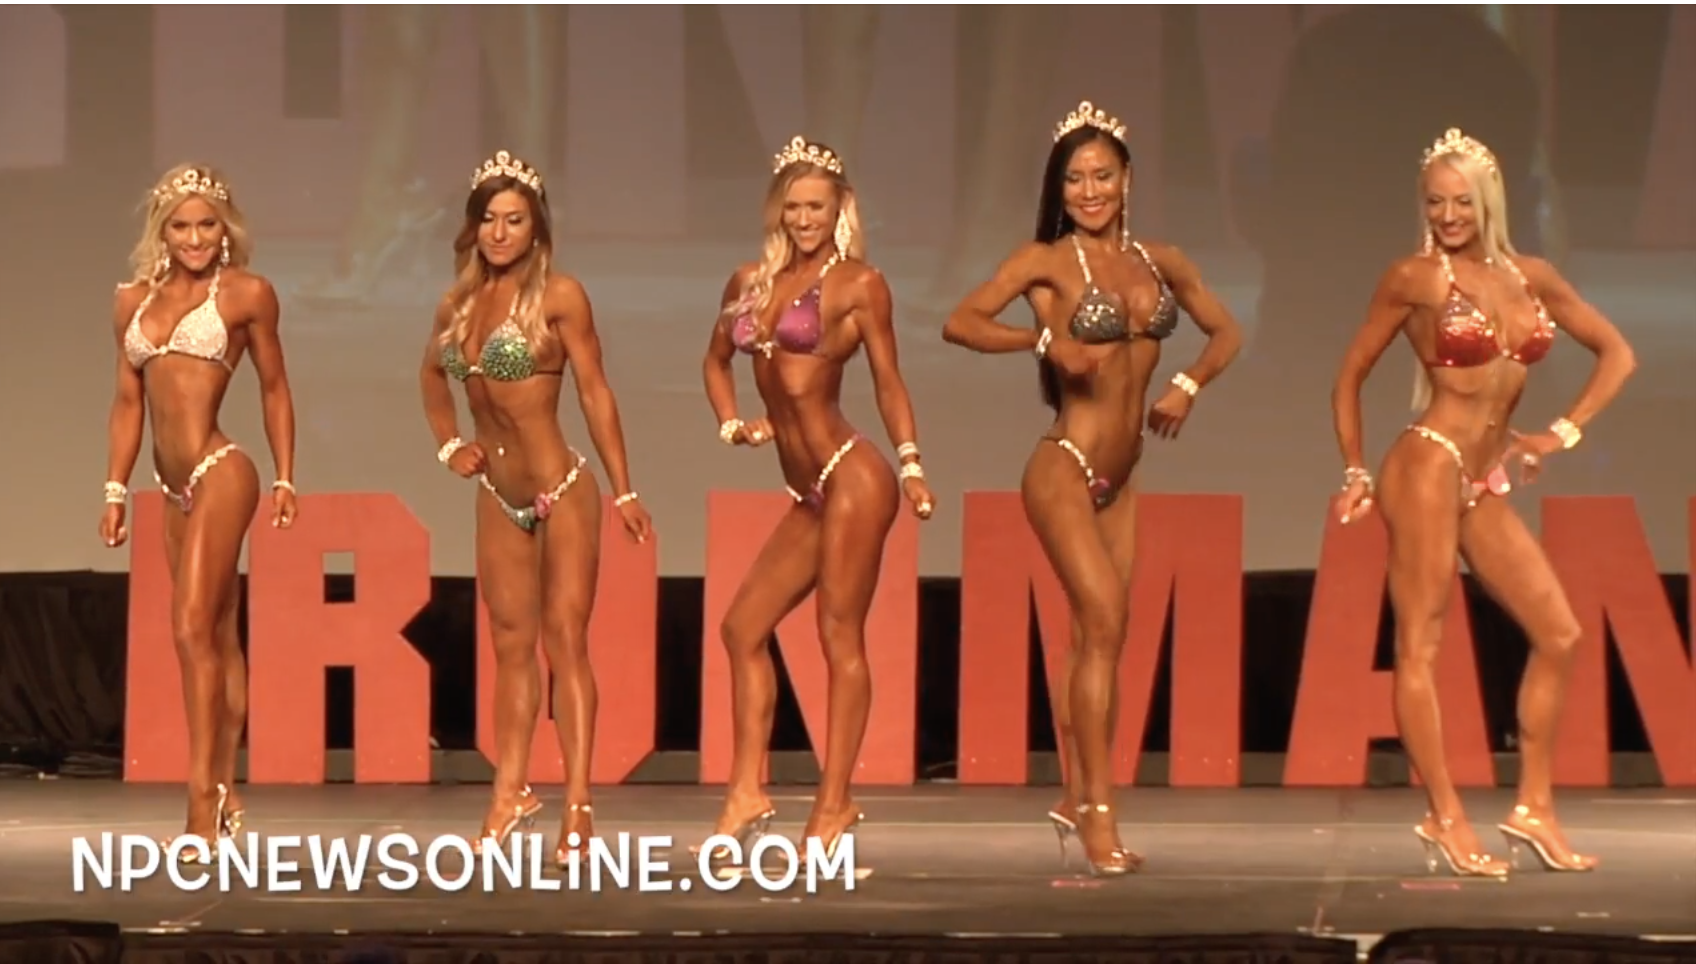 2017 NPC Washington Ironman Bikini Overall Video